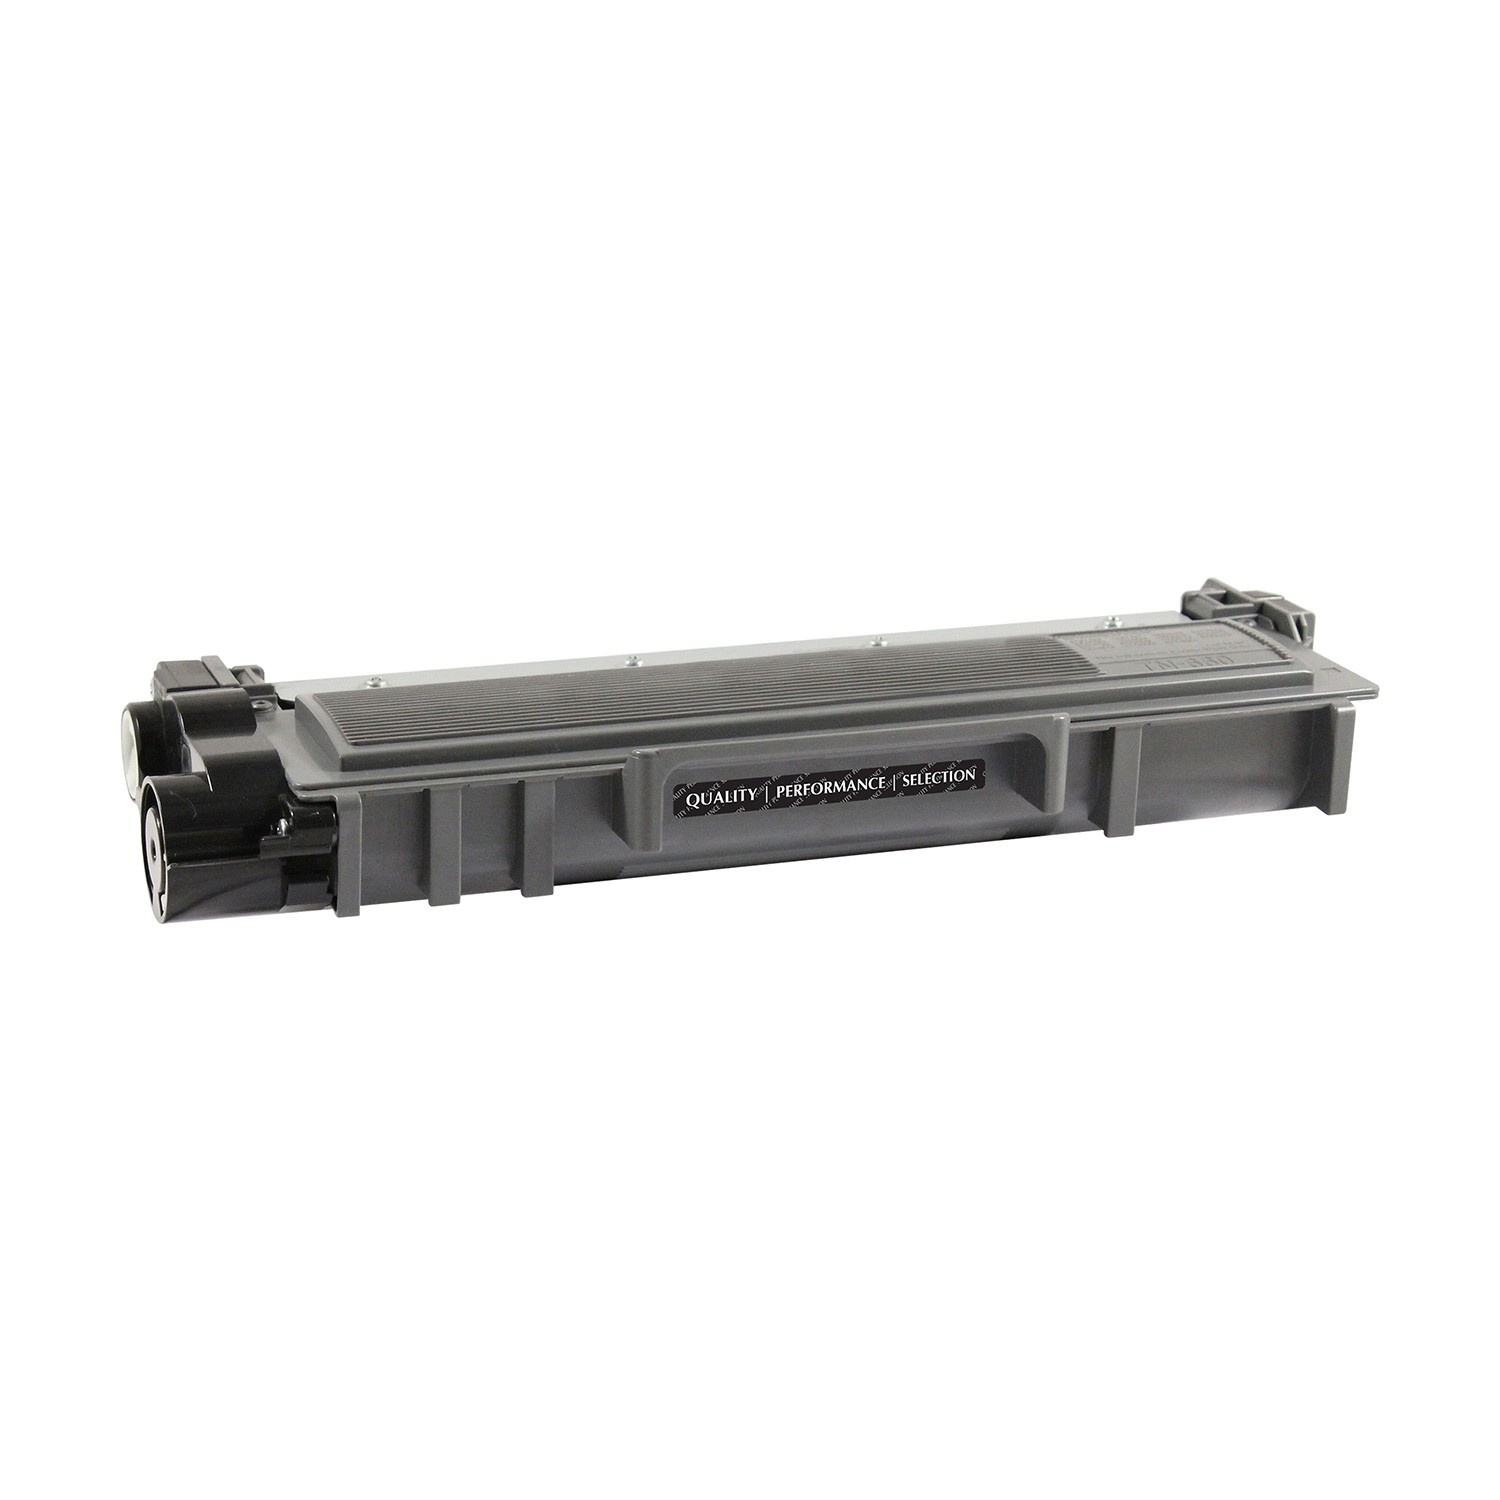 TONER 2600PG YIELD REPLACES BROTHER TN660